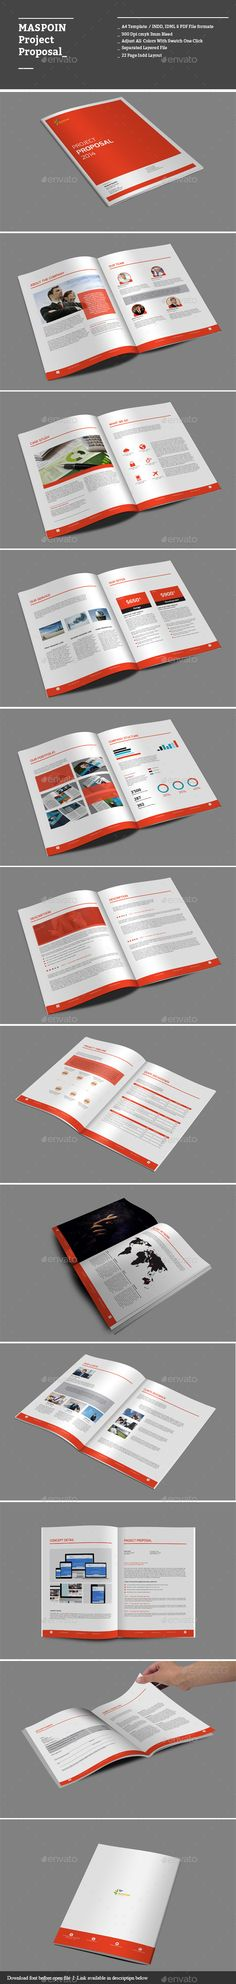 DesignsMill Complete Proposal Bundle Proposals, Proposal - download business proposal template